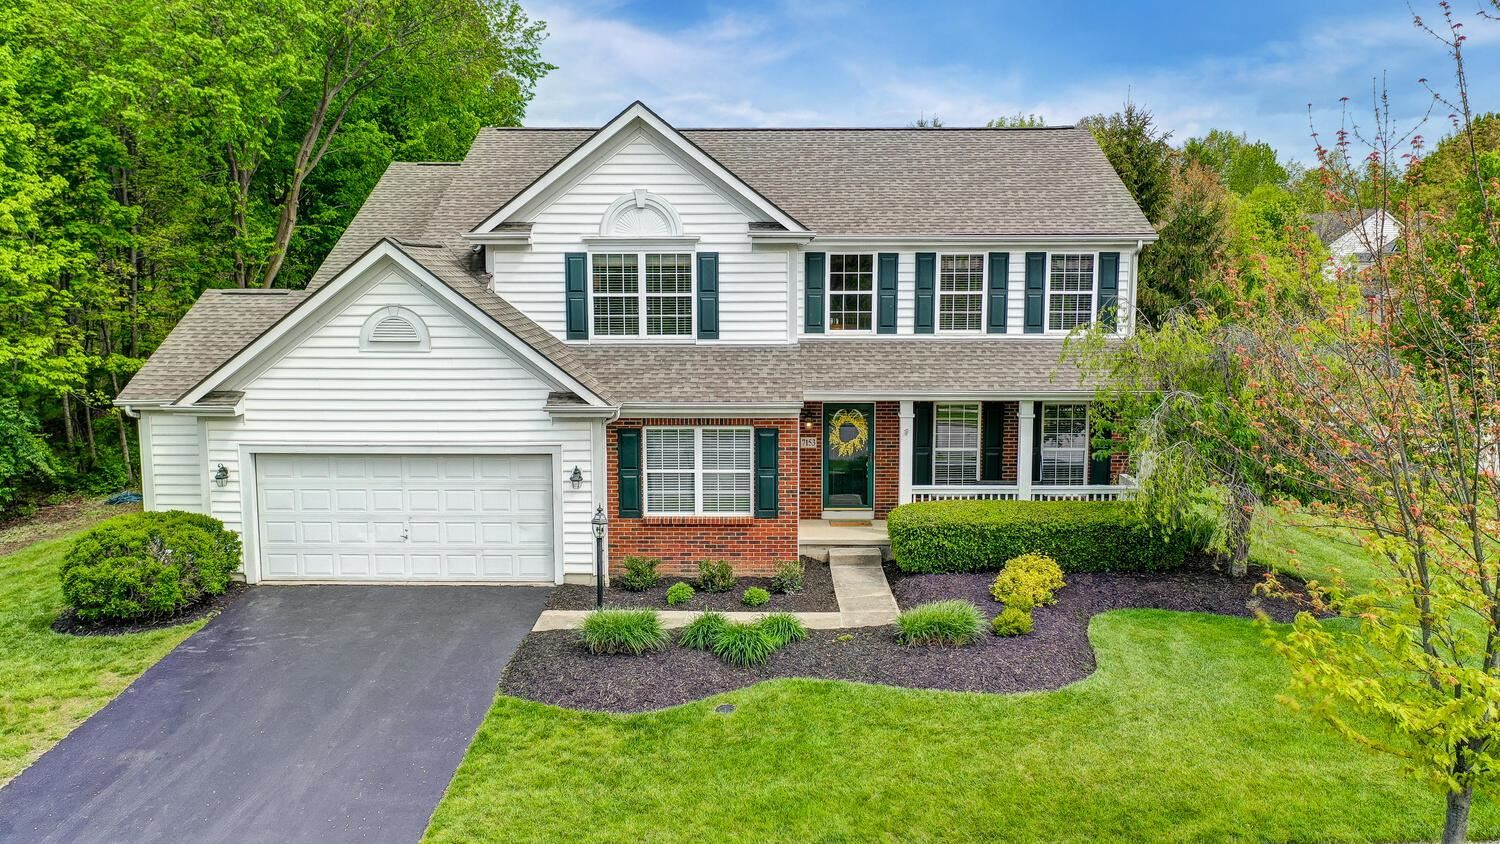 Photo of 7153 Scioto Chase Boulevard, Powell, OH 43065 (MLS # 221015628)